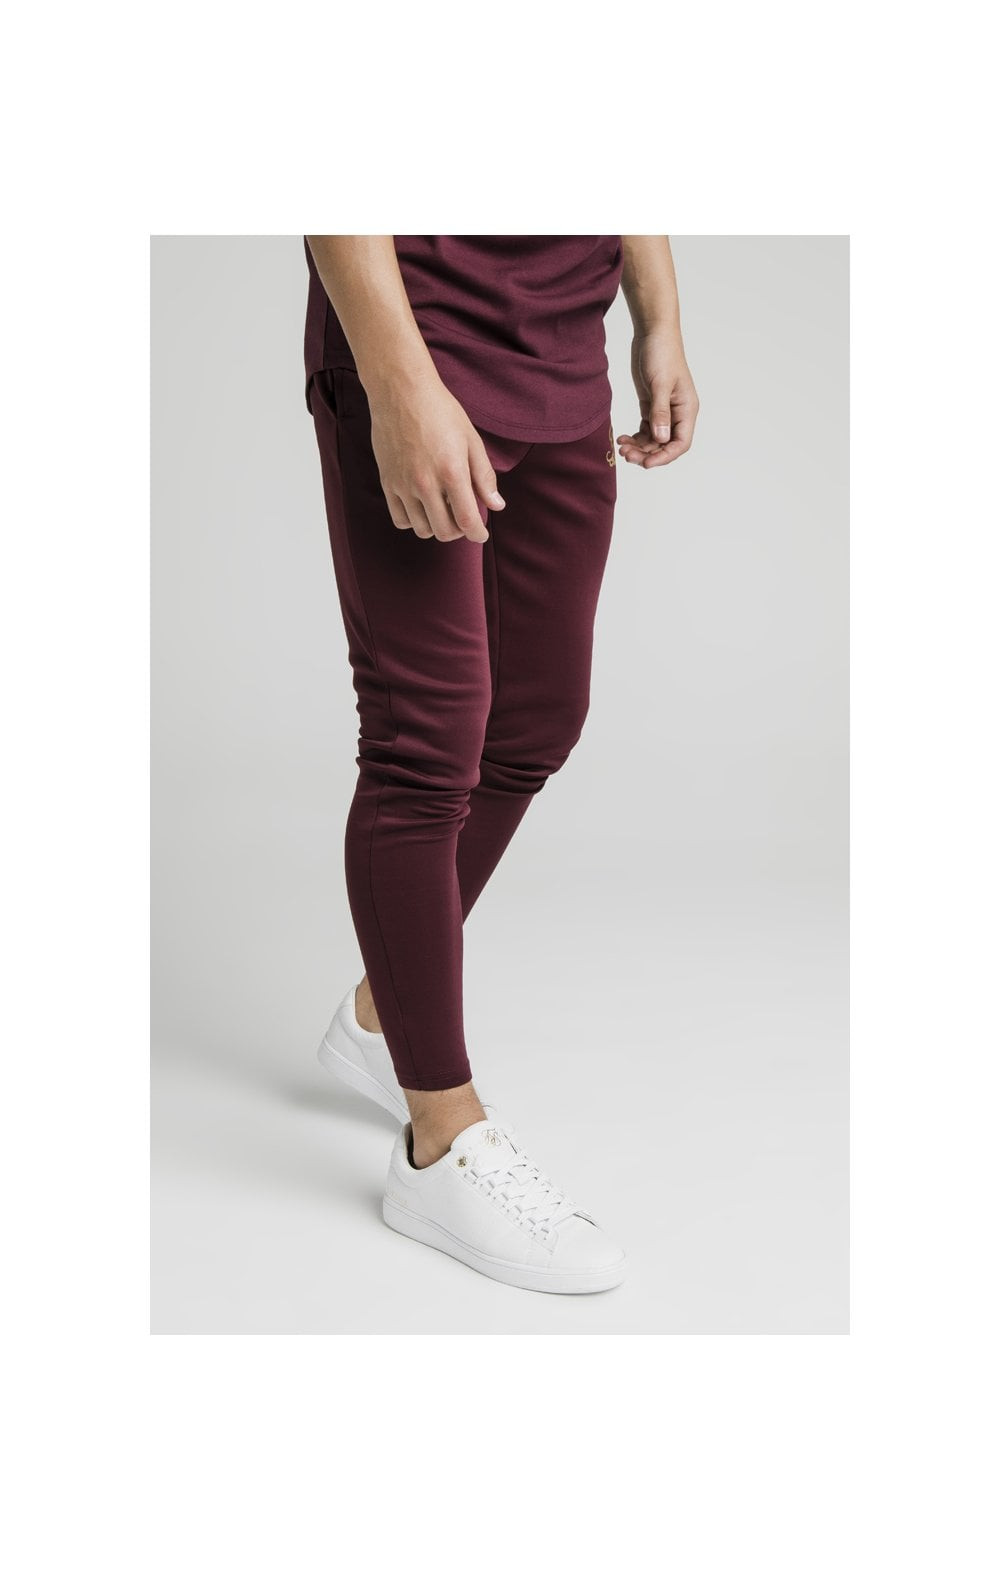 Illusive London Agility Track Pants - Burgundy (1)